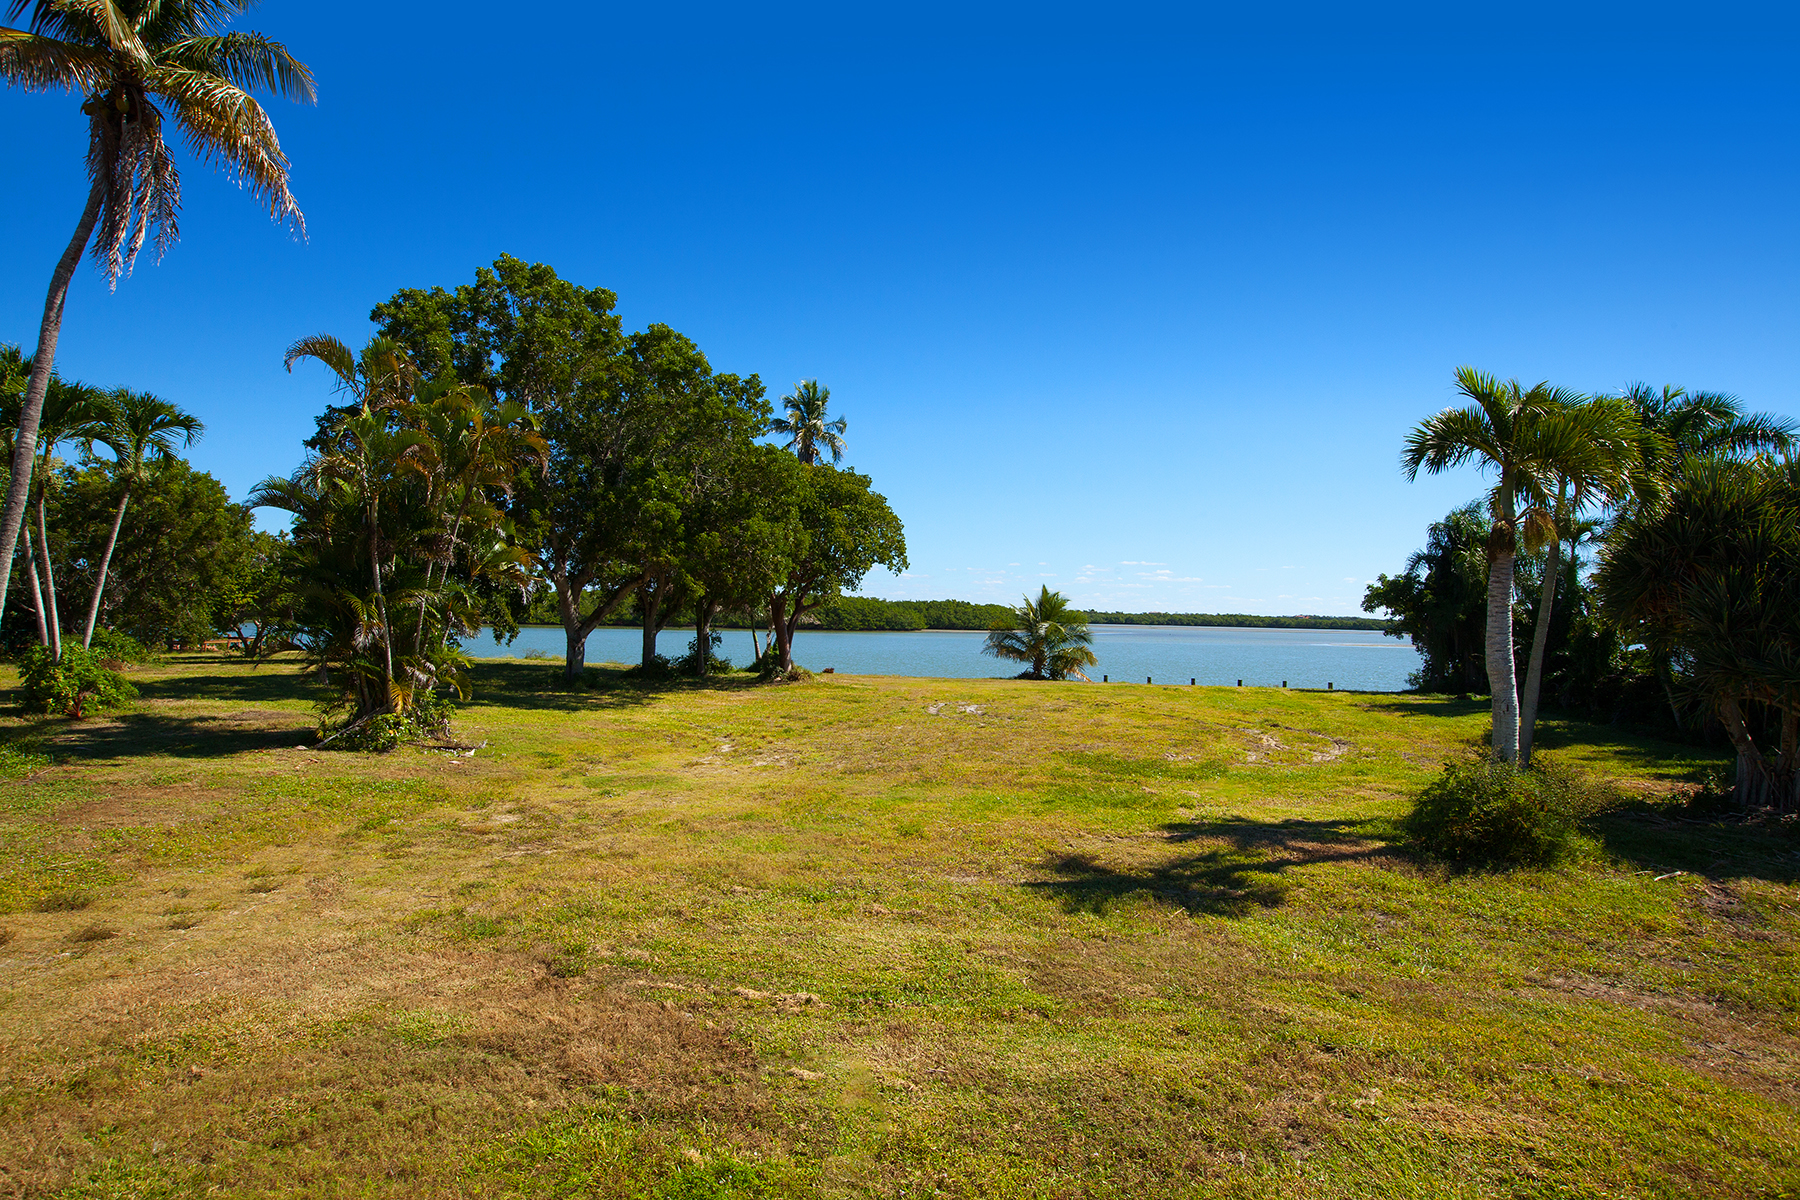 Land for Sale at ESTATES - CAXAMBAS DRIVE 945 Caxambas Dr Marco Island, Florida 34145 United States